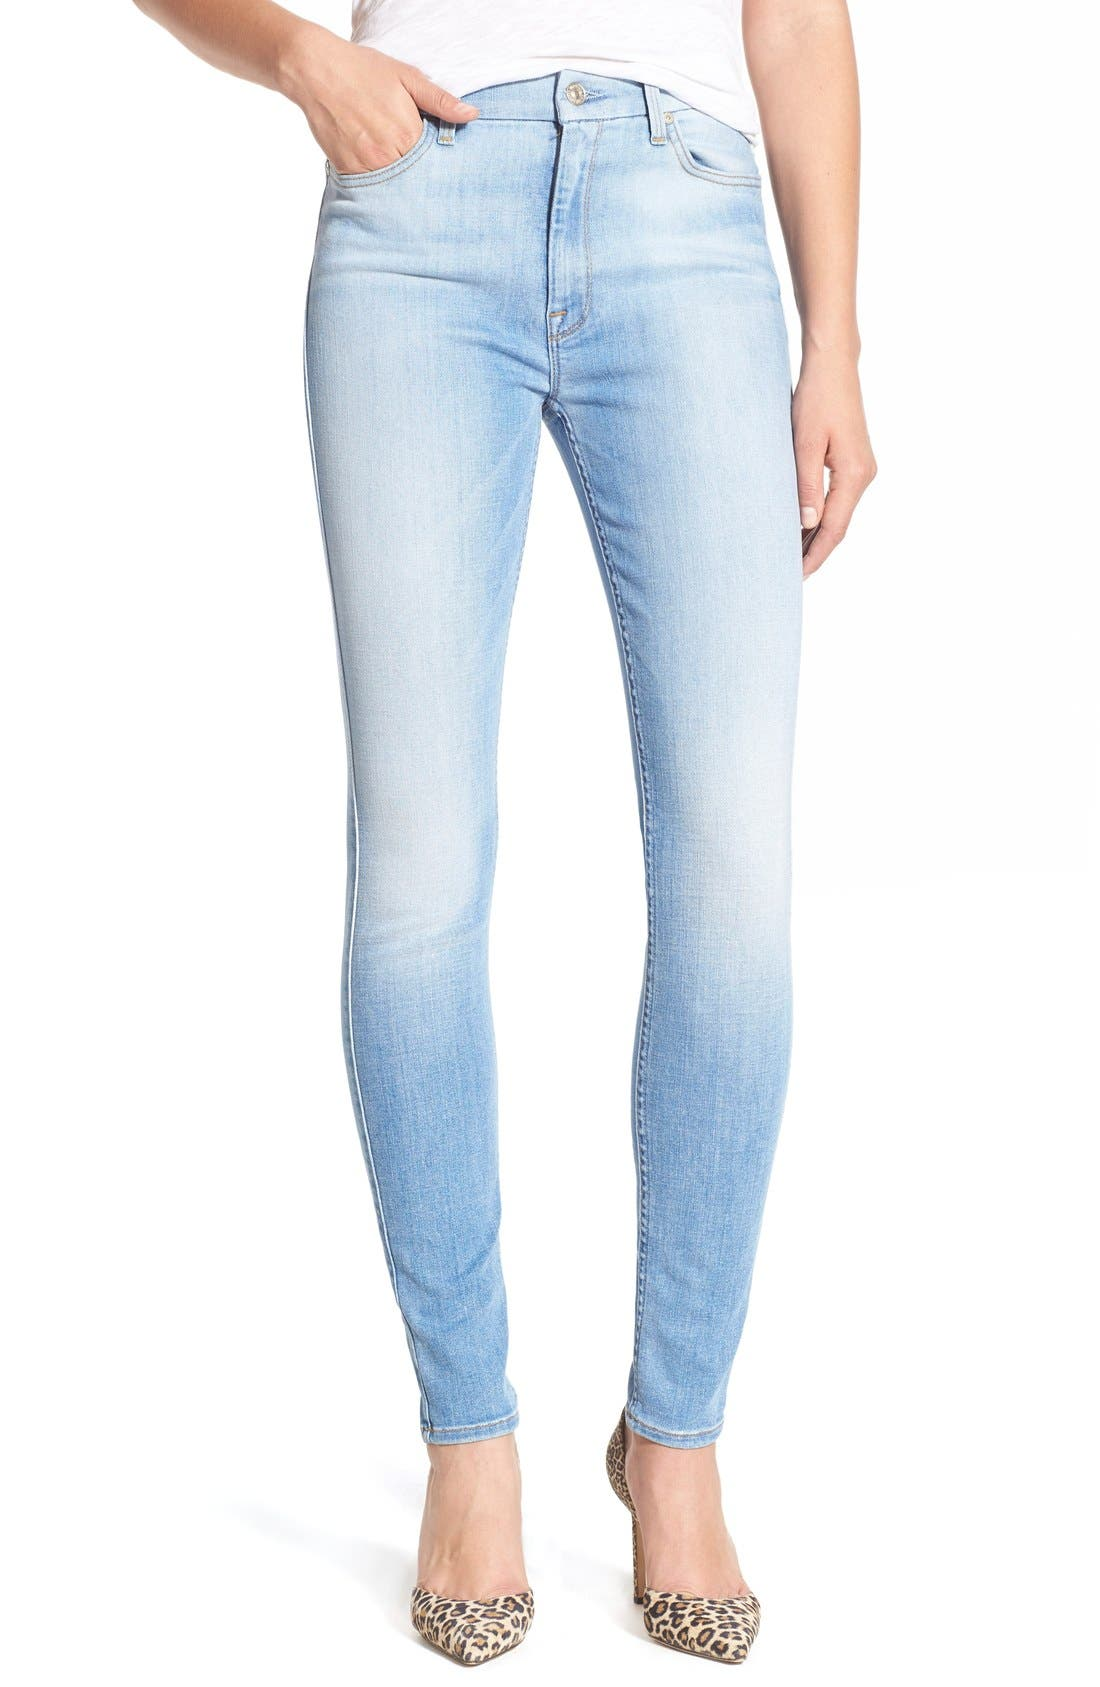 Alternate Image 1 Selected - 7 For All Mankind® High Rise Skinny Jeans (Mediterranean Sky)